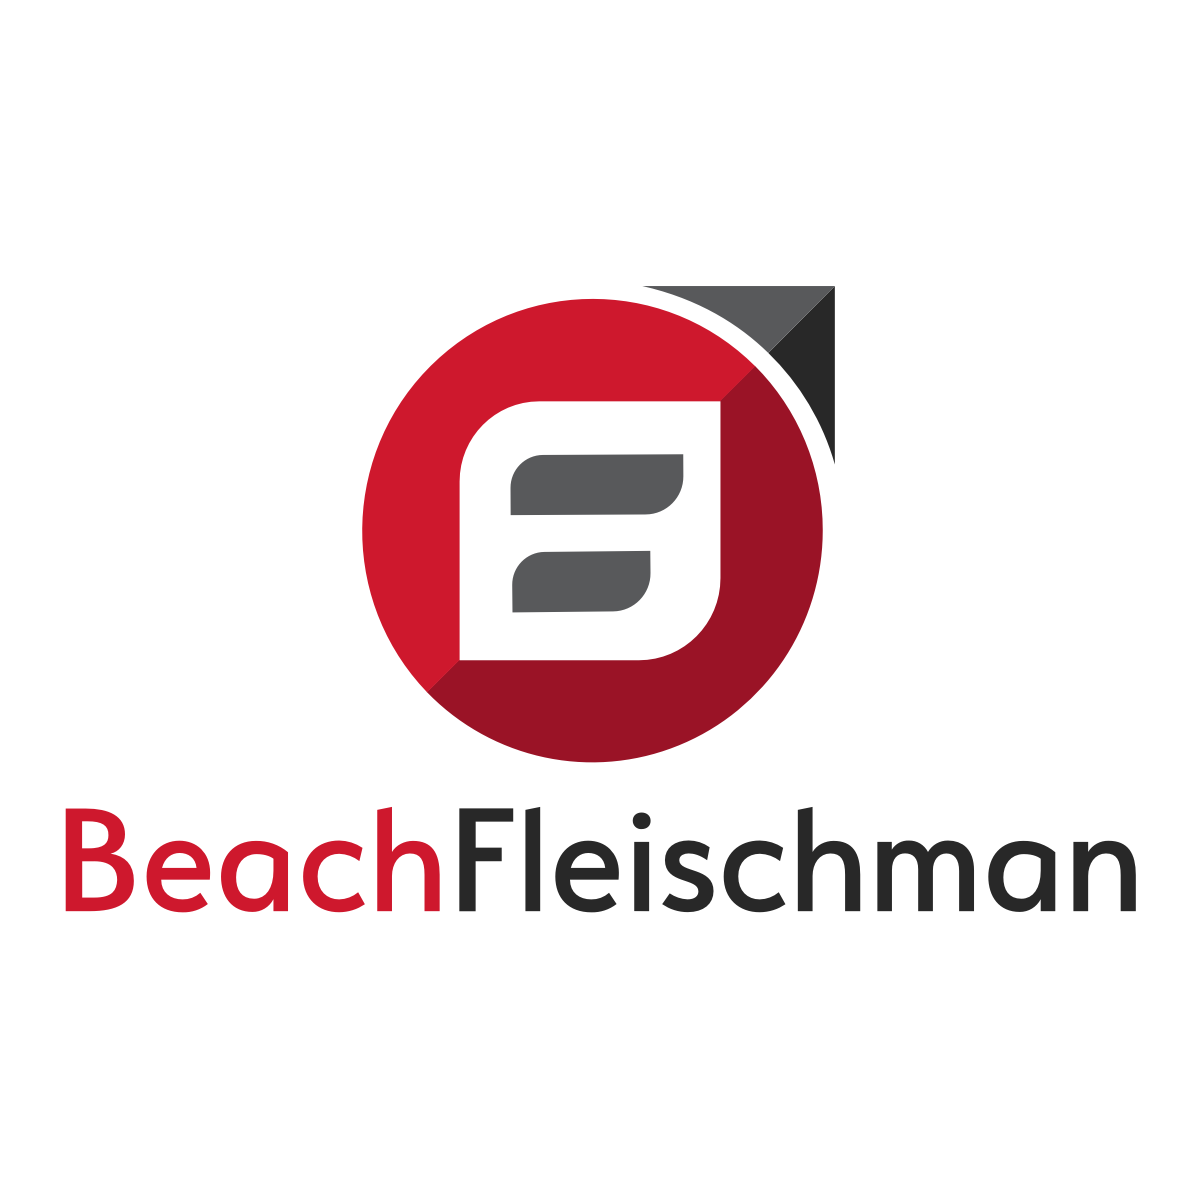 Free Printable Blank Invoice Form Pdf Beachfleischman Cpas  Accounting Firm  Phoenix Tucson Arizona Az How To Get Invoice Price For New Car Word with Iphone Receipt Printer  Computer Repair Invoice Software Excel